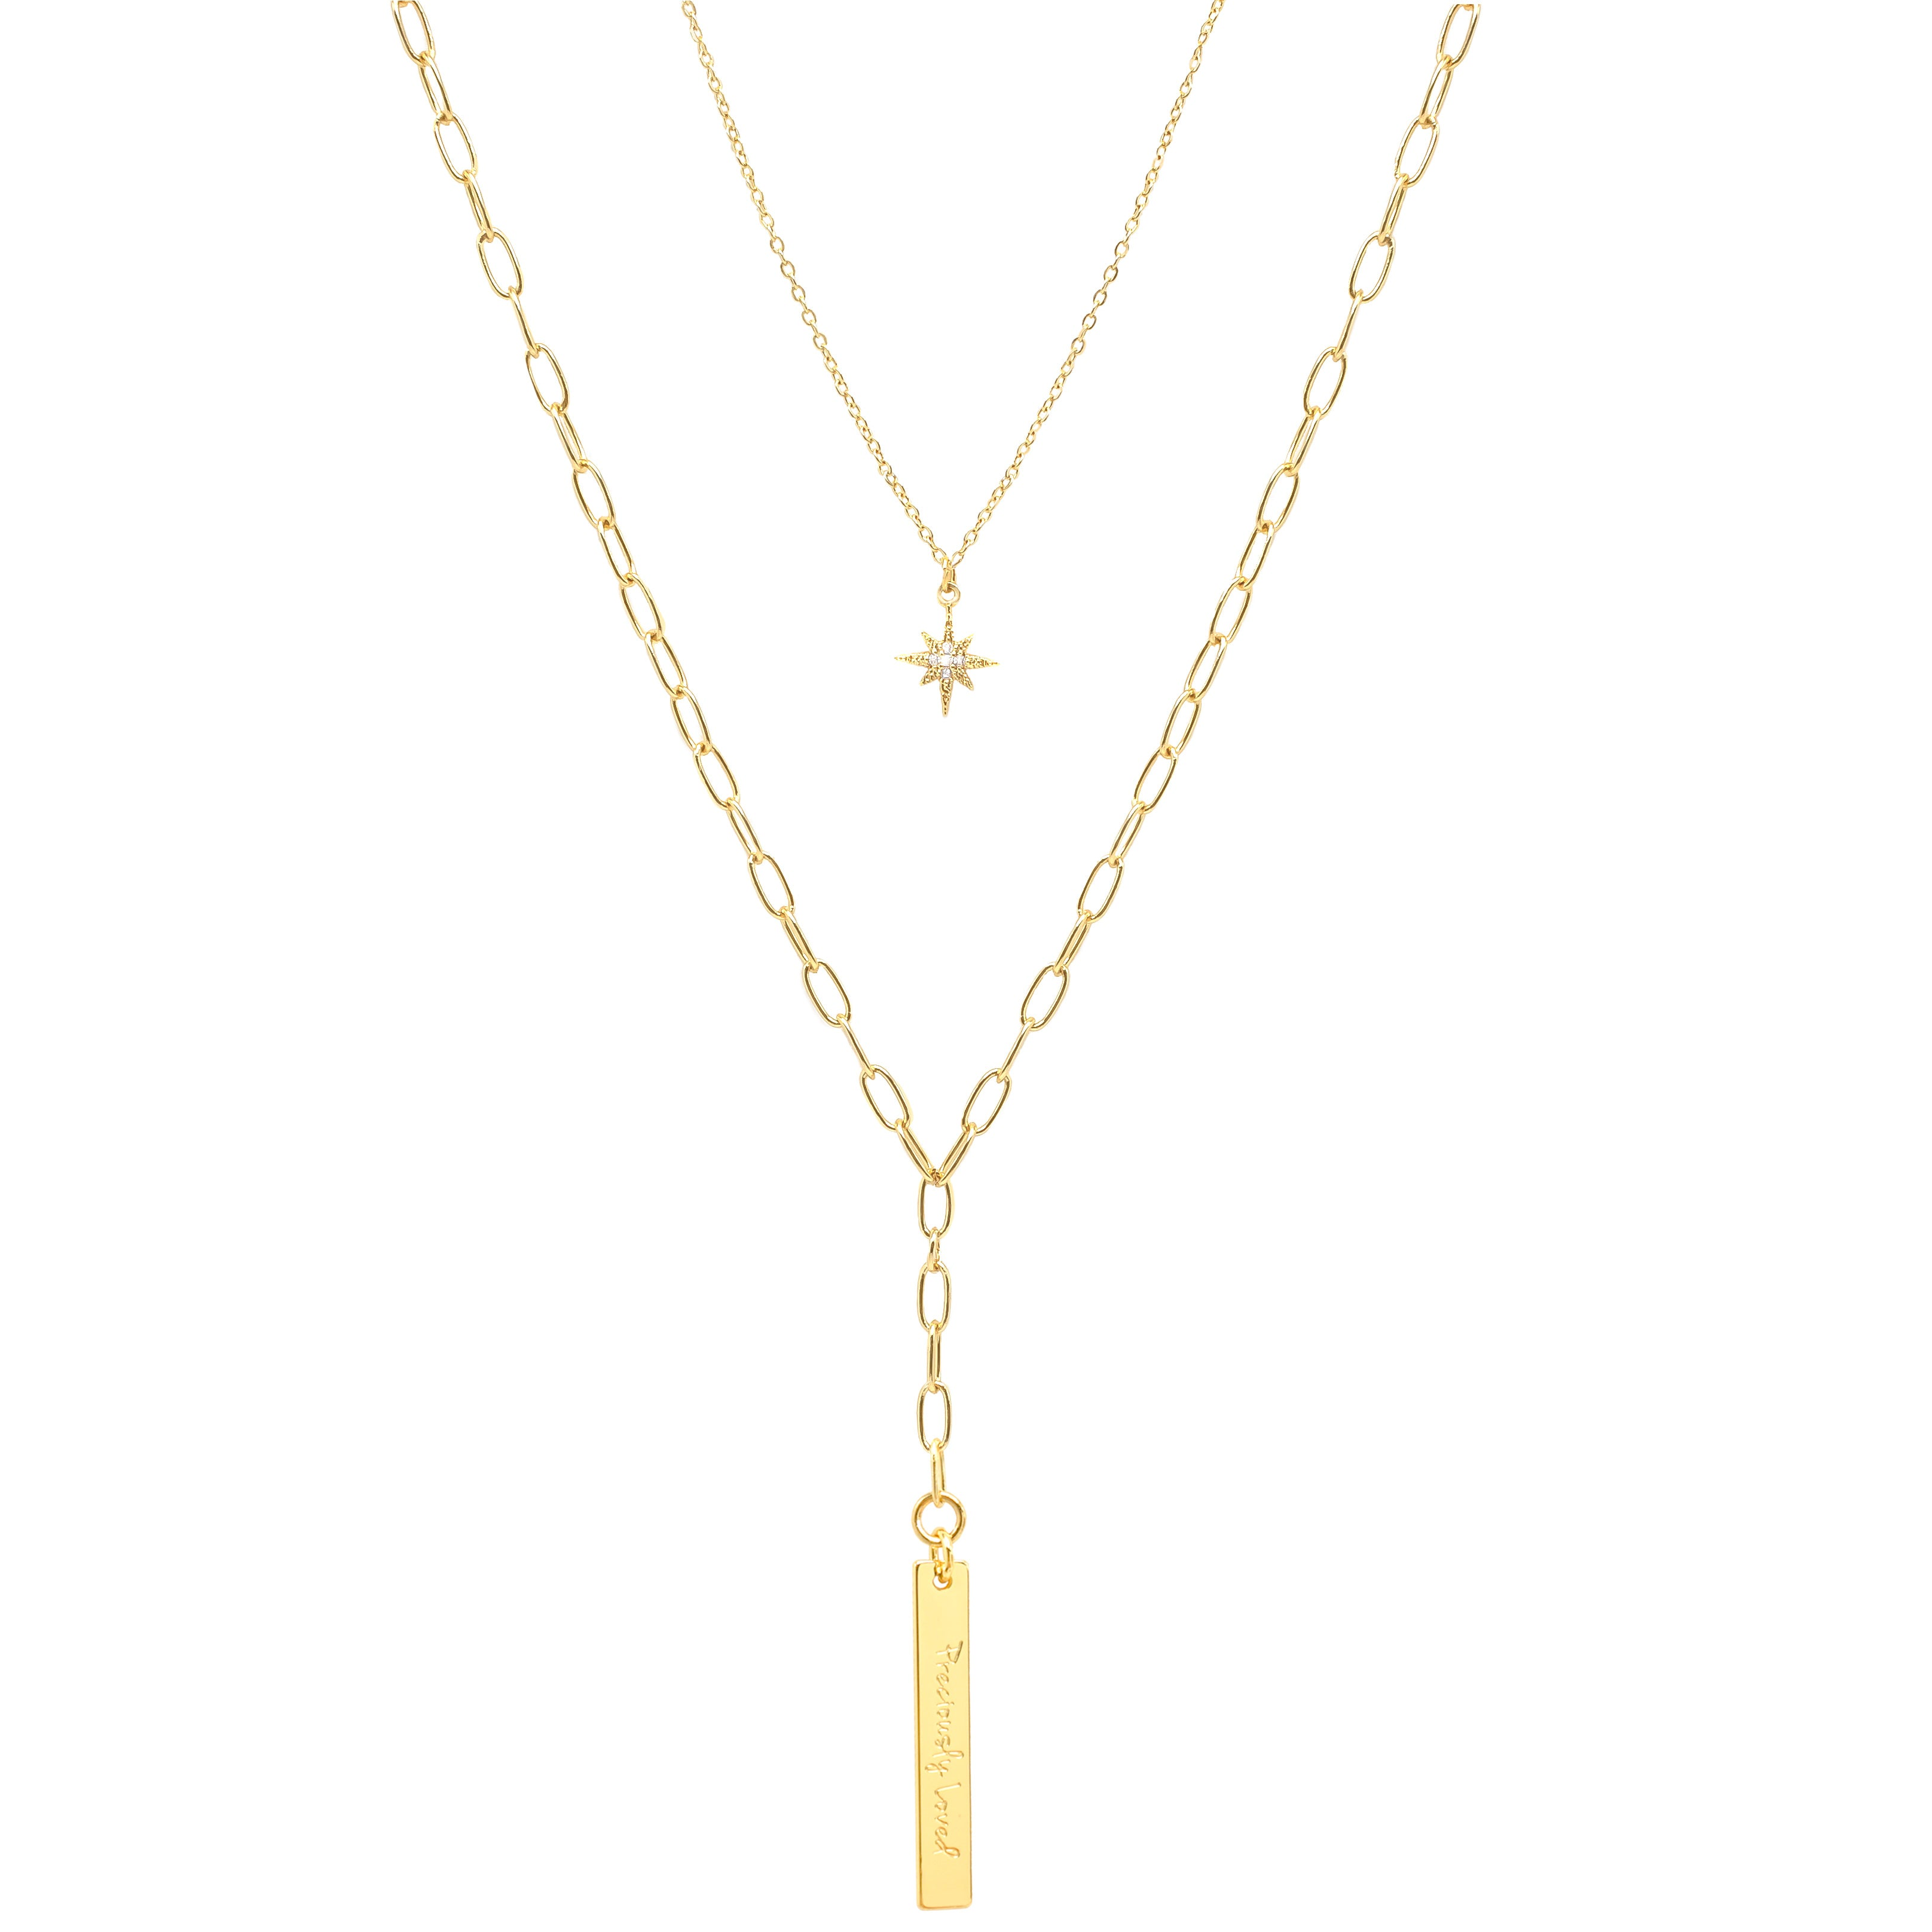 Layered Y Necklace with Starburst and Long Bar Charm Necklace - IT STYLE BOX